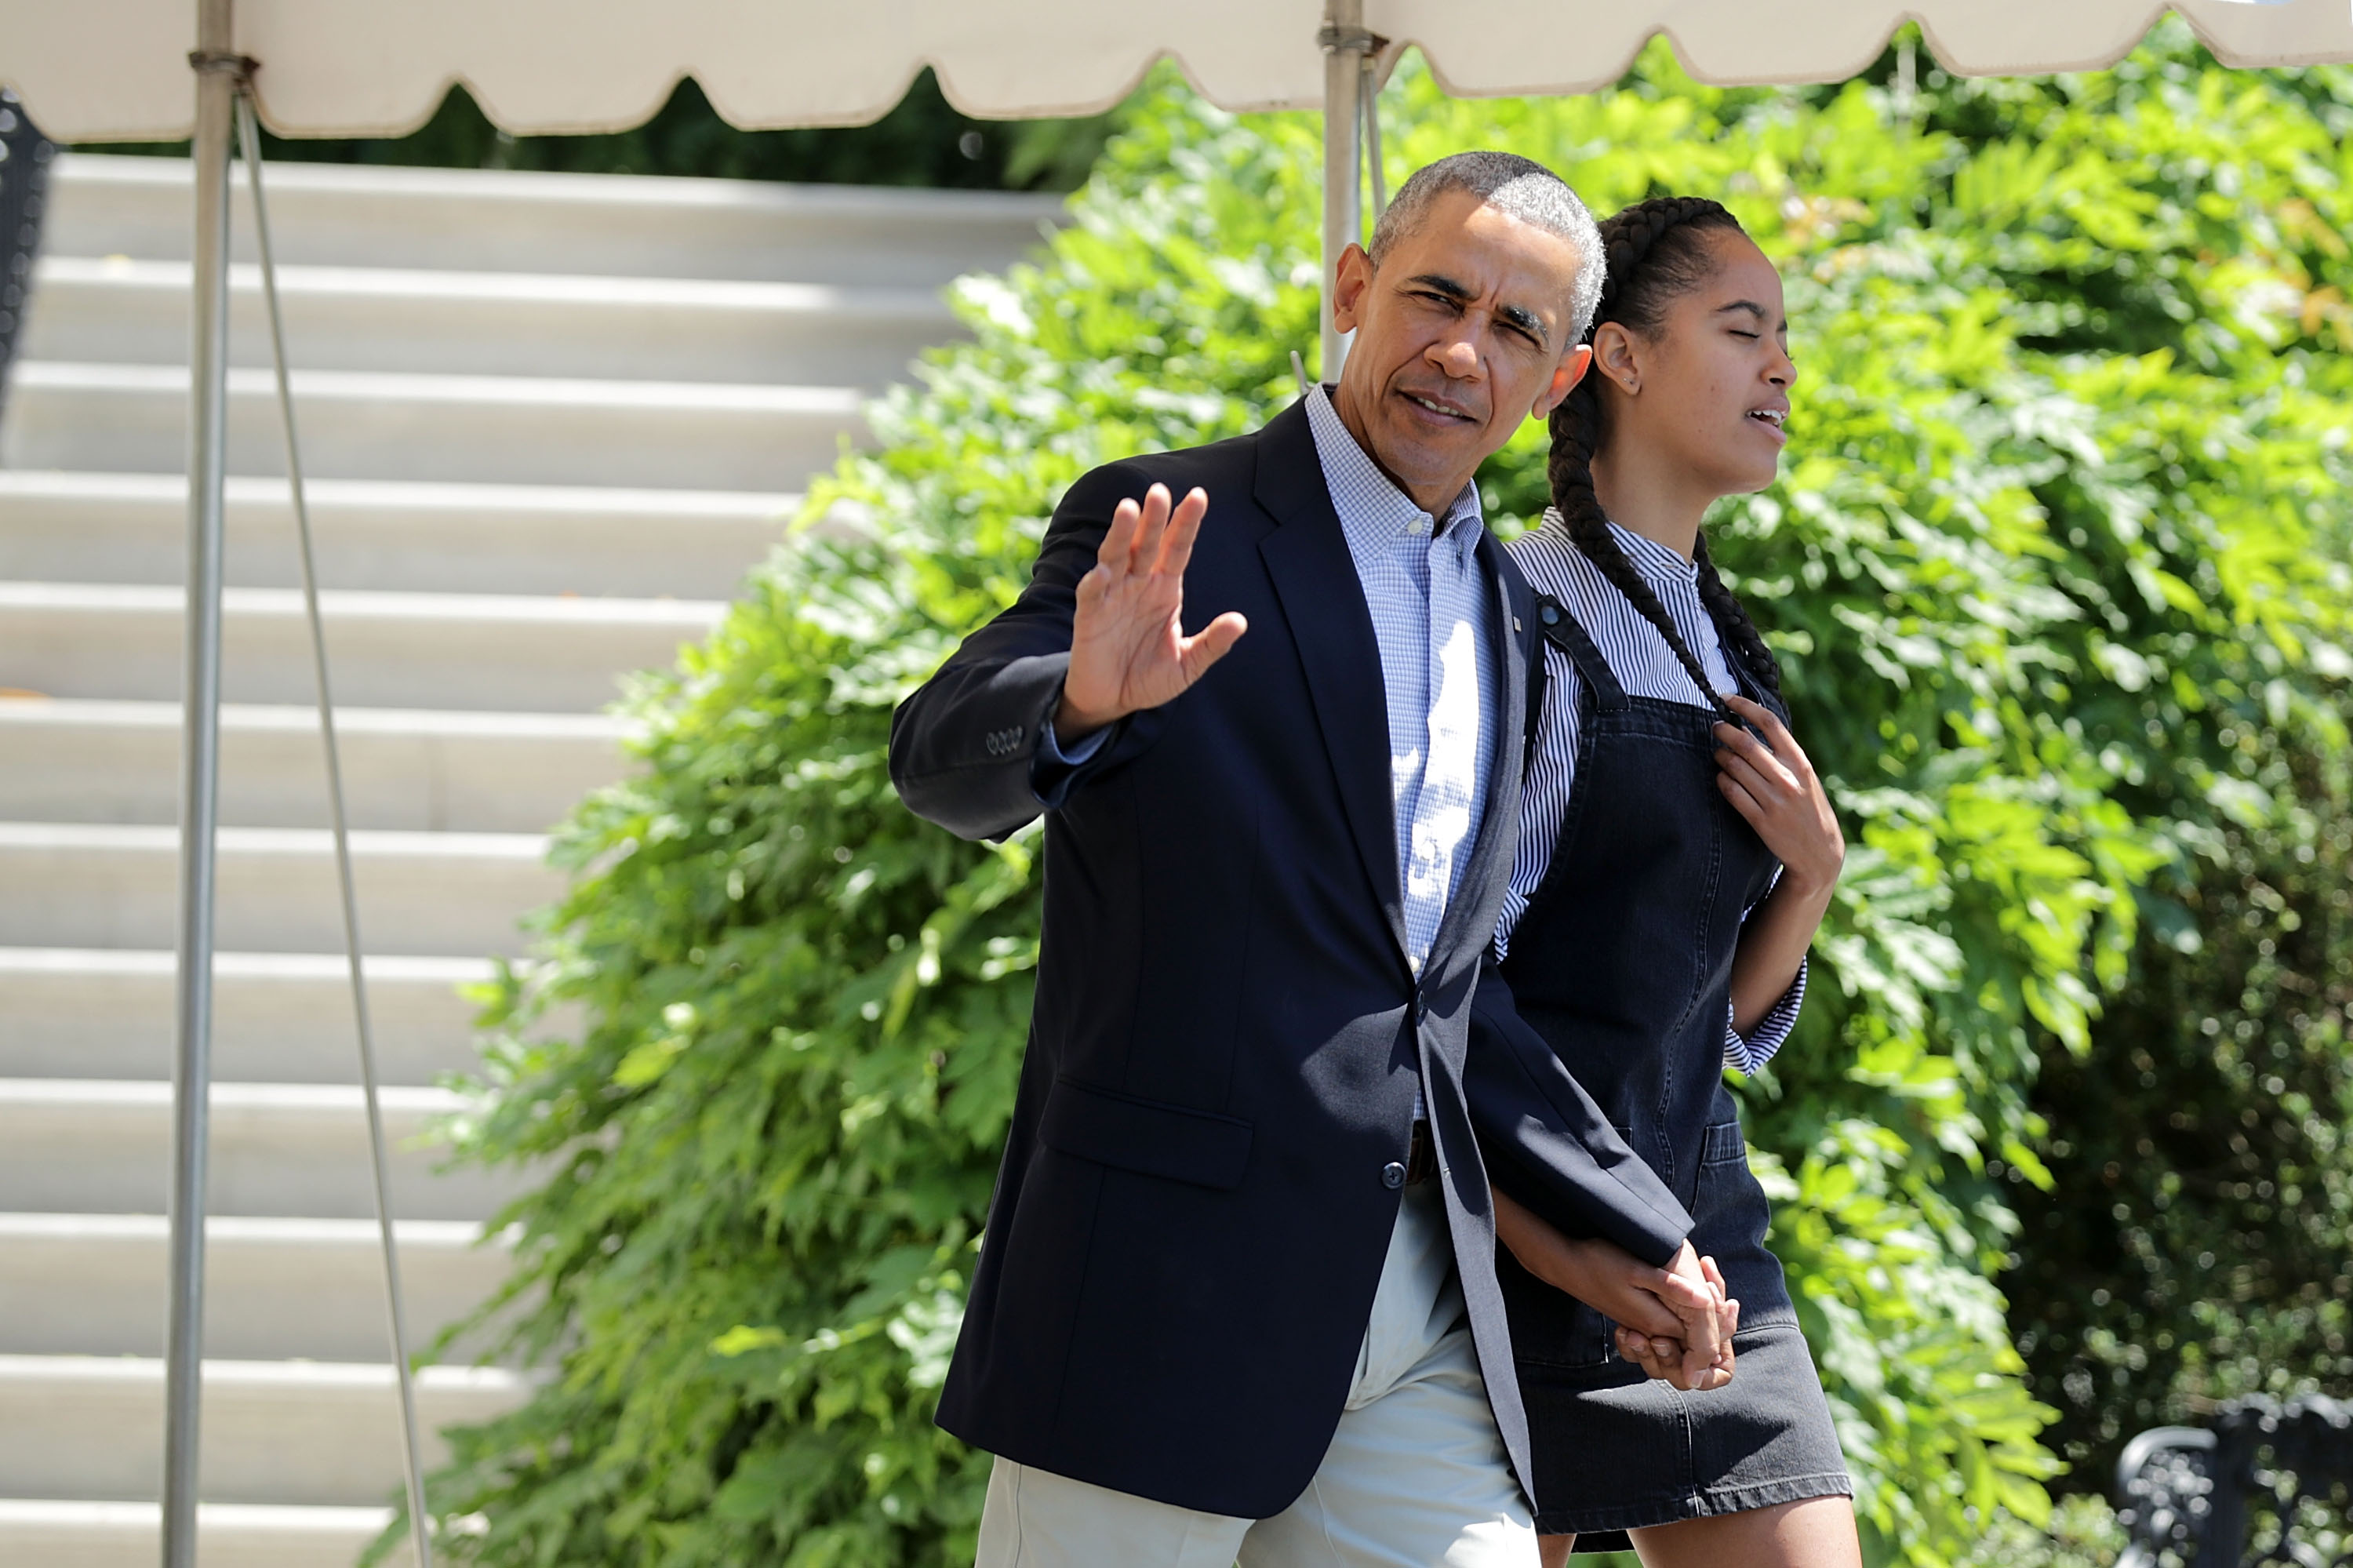 Heres How Obama Punished His Daughter For Smoking Weed GettyImages 540919868